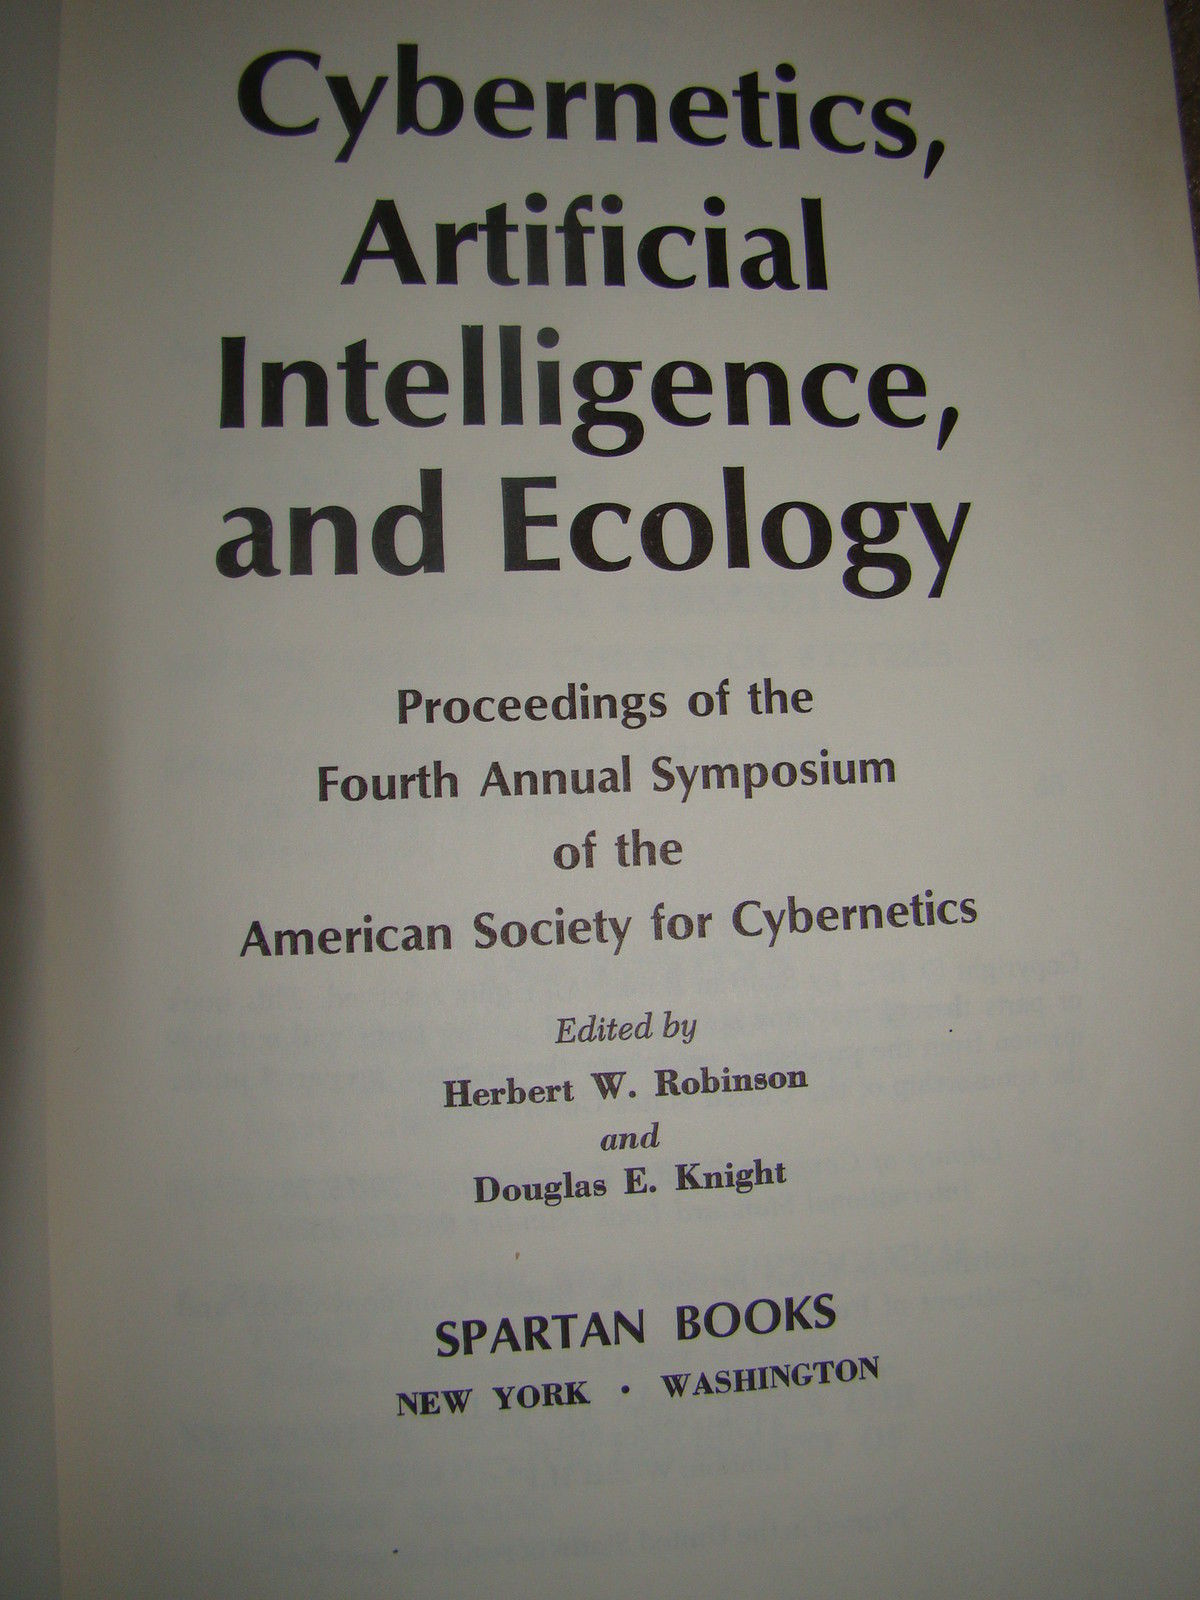 Cybernetics, Artificial Intelligence, and Ecology